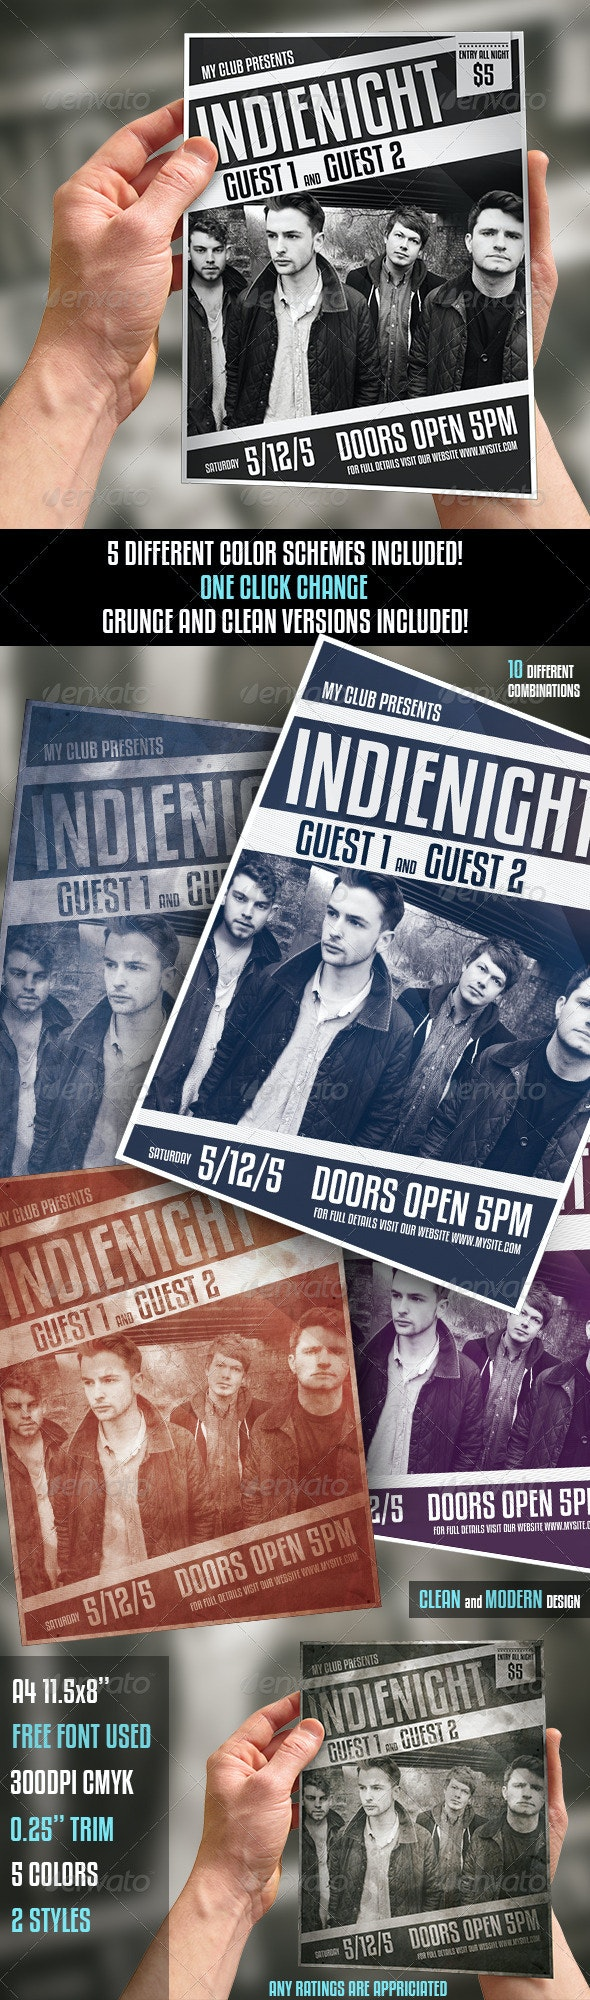 Indie - Modern Music Flyer - Concerts Events